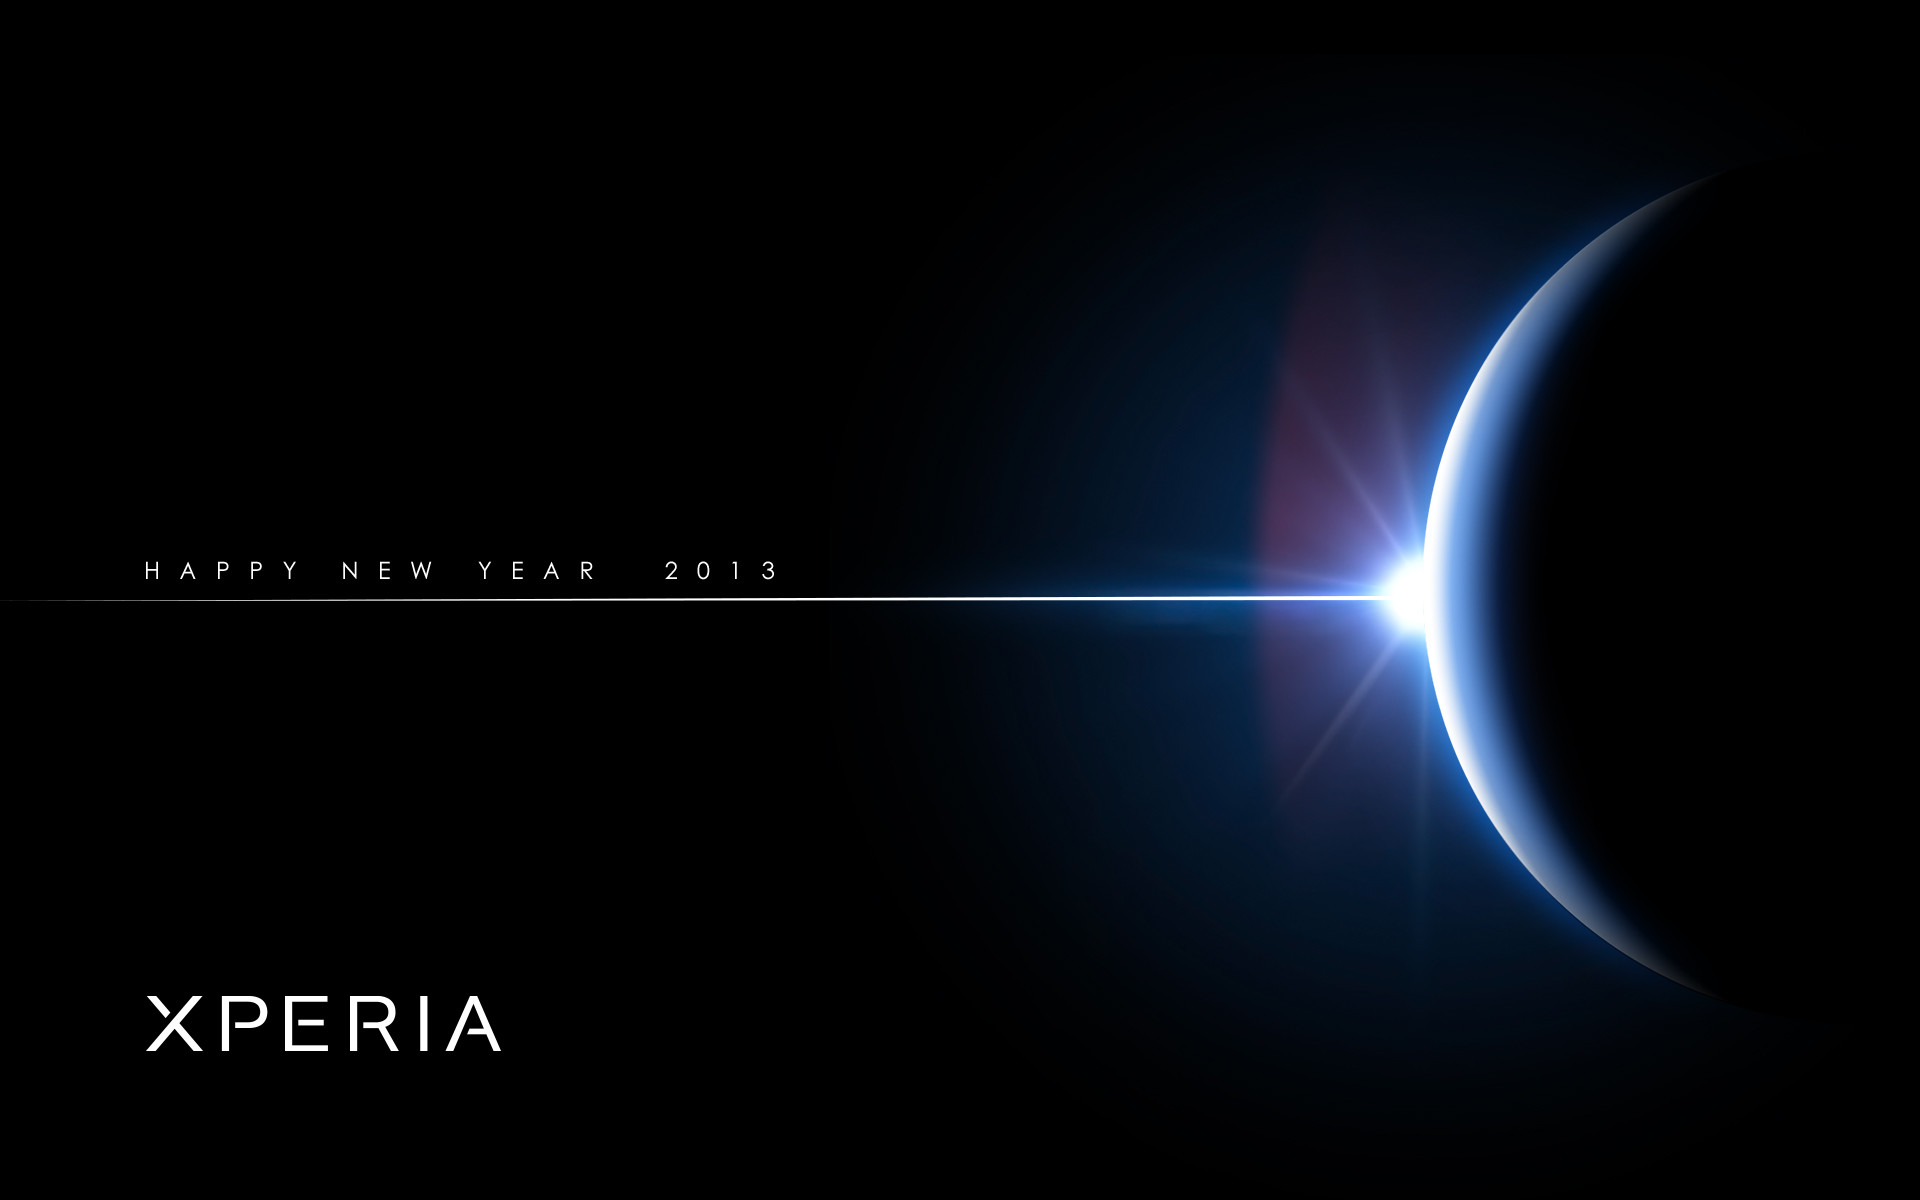 Sony Xperia Wallpapers 79 Pictures